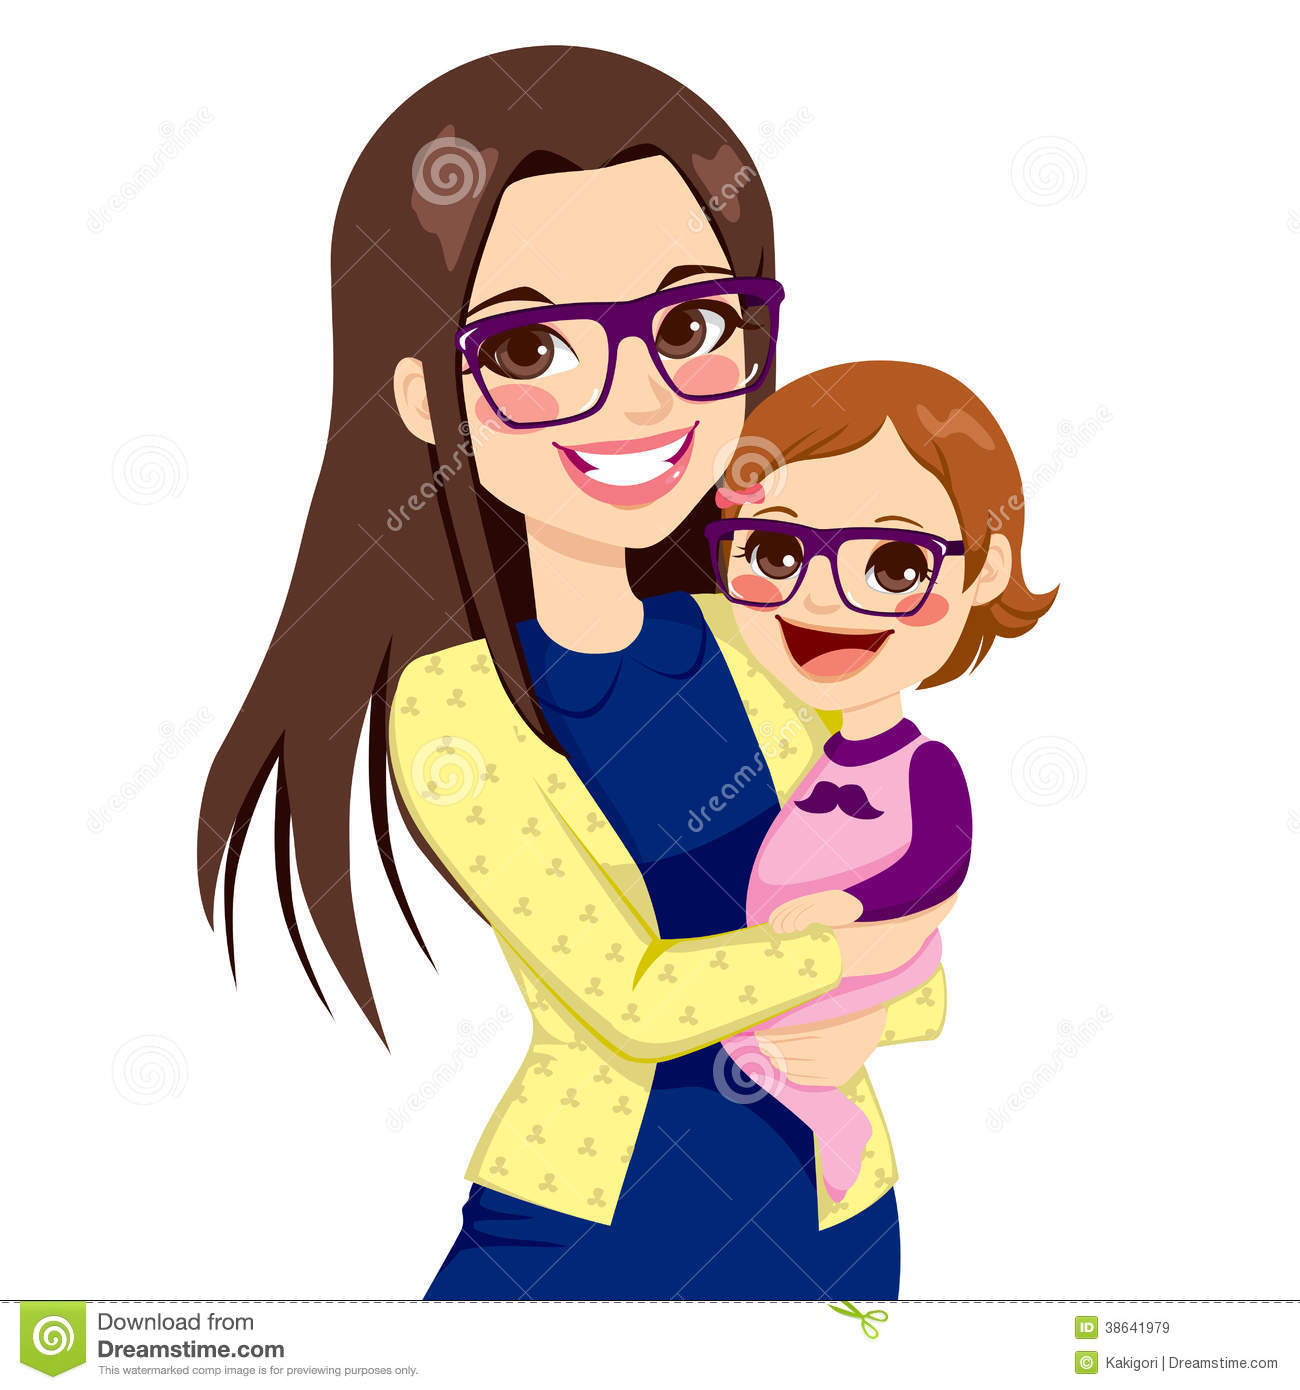 jetson single parent personals Dating and single parents: nine things to know 1 parents are popular really popular as elitesingles psychologist salama marine notes ''there is a common misconception that finding love as.